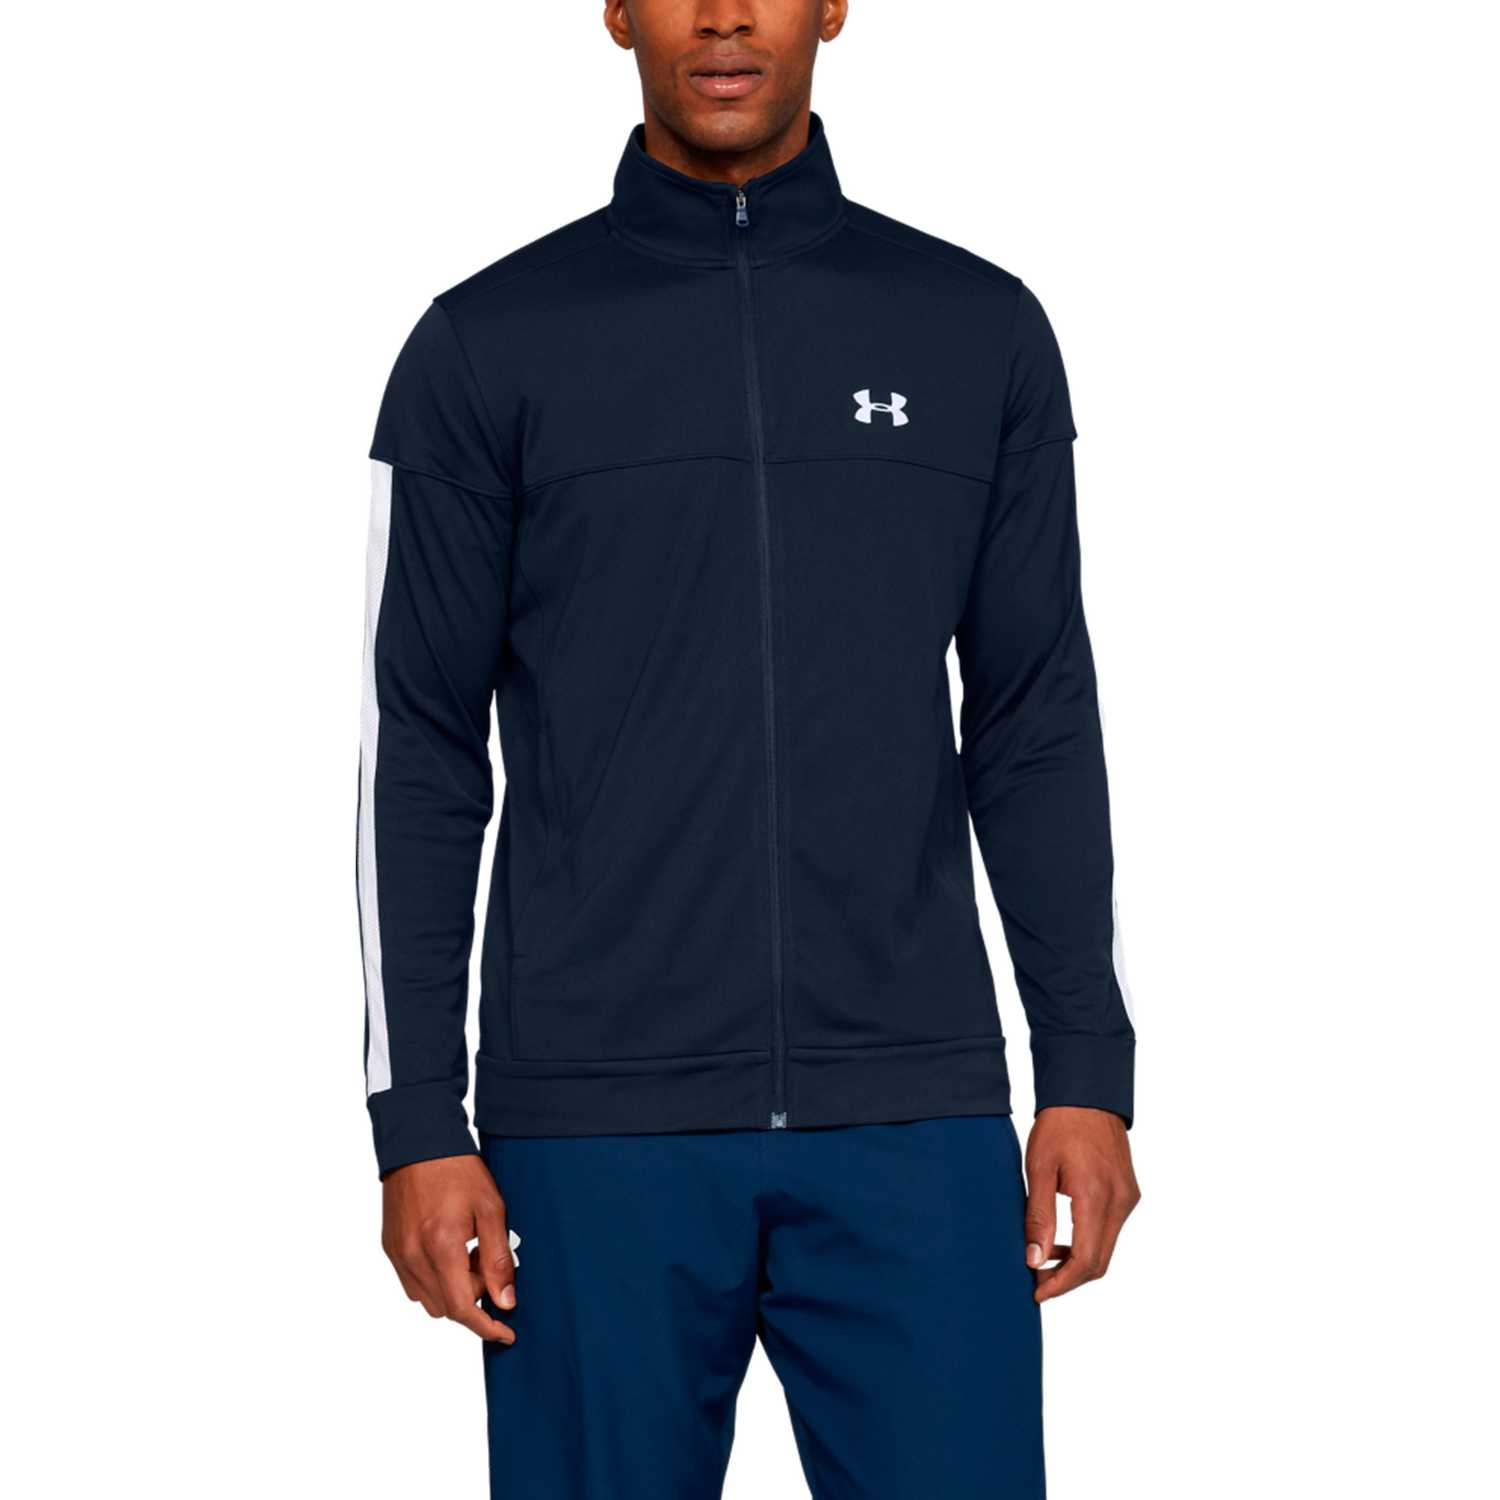 Under Armour sportstyle pique track jacket-nvy Azul / blanco Casacas de Atletismo